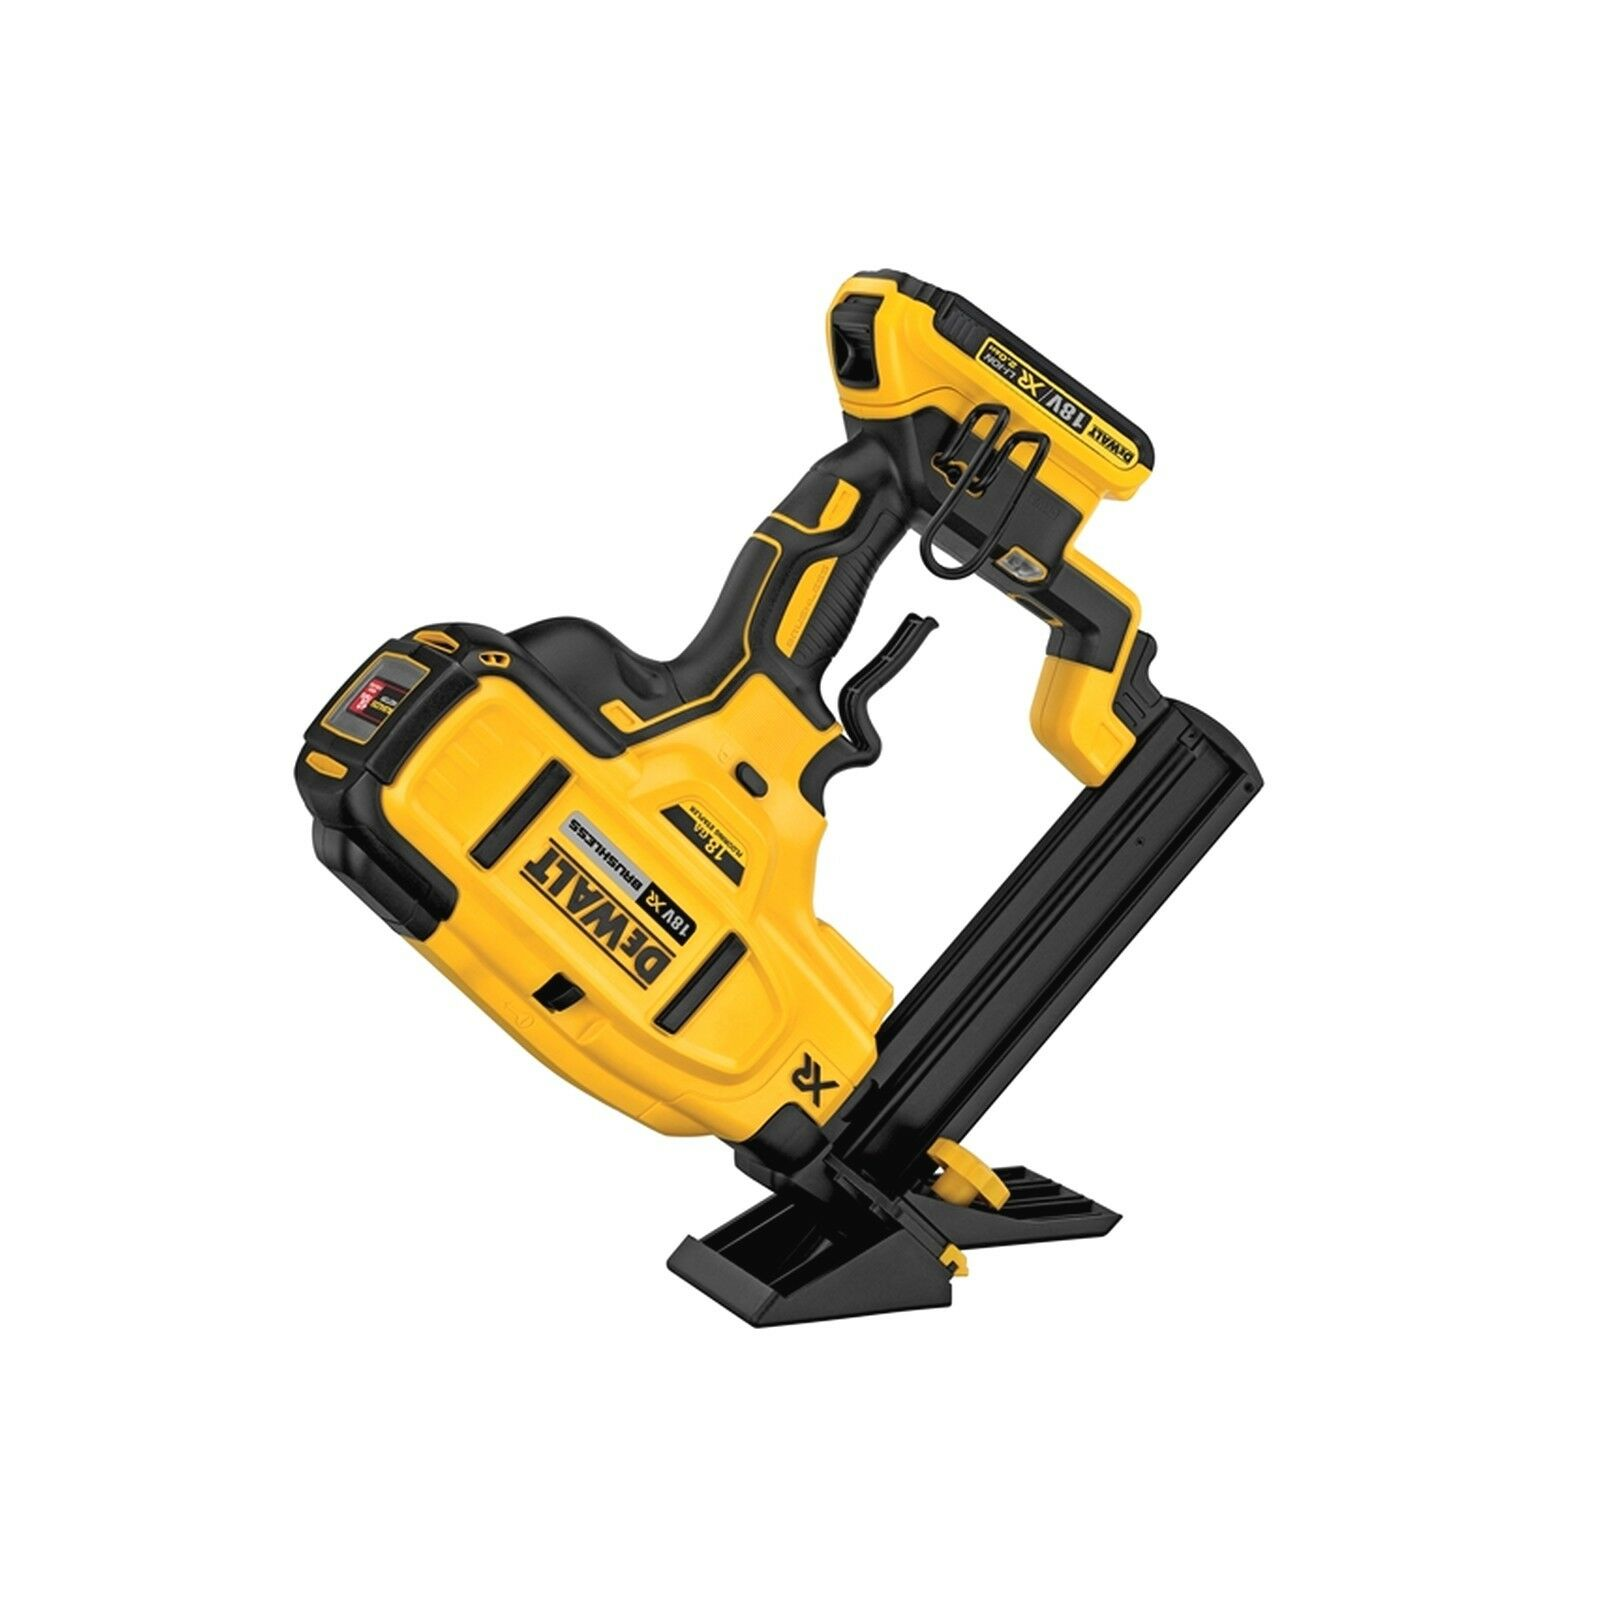 DEWALT DCN682D2 XR Brushless 18G Floor Stapler 18V 2 x 2.0Ah Li-ion